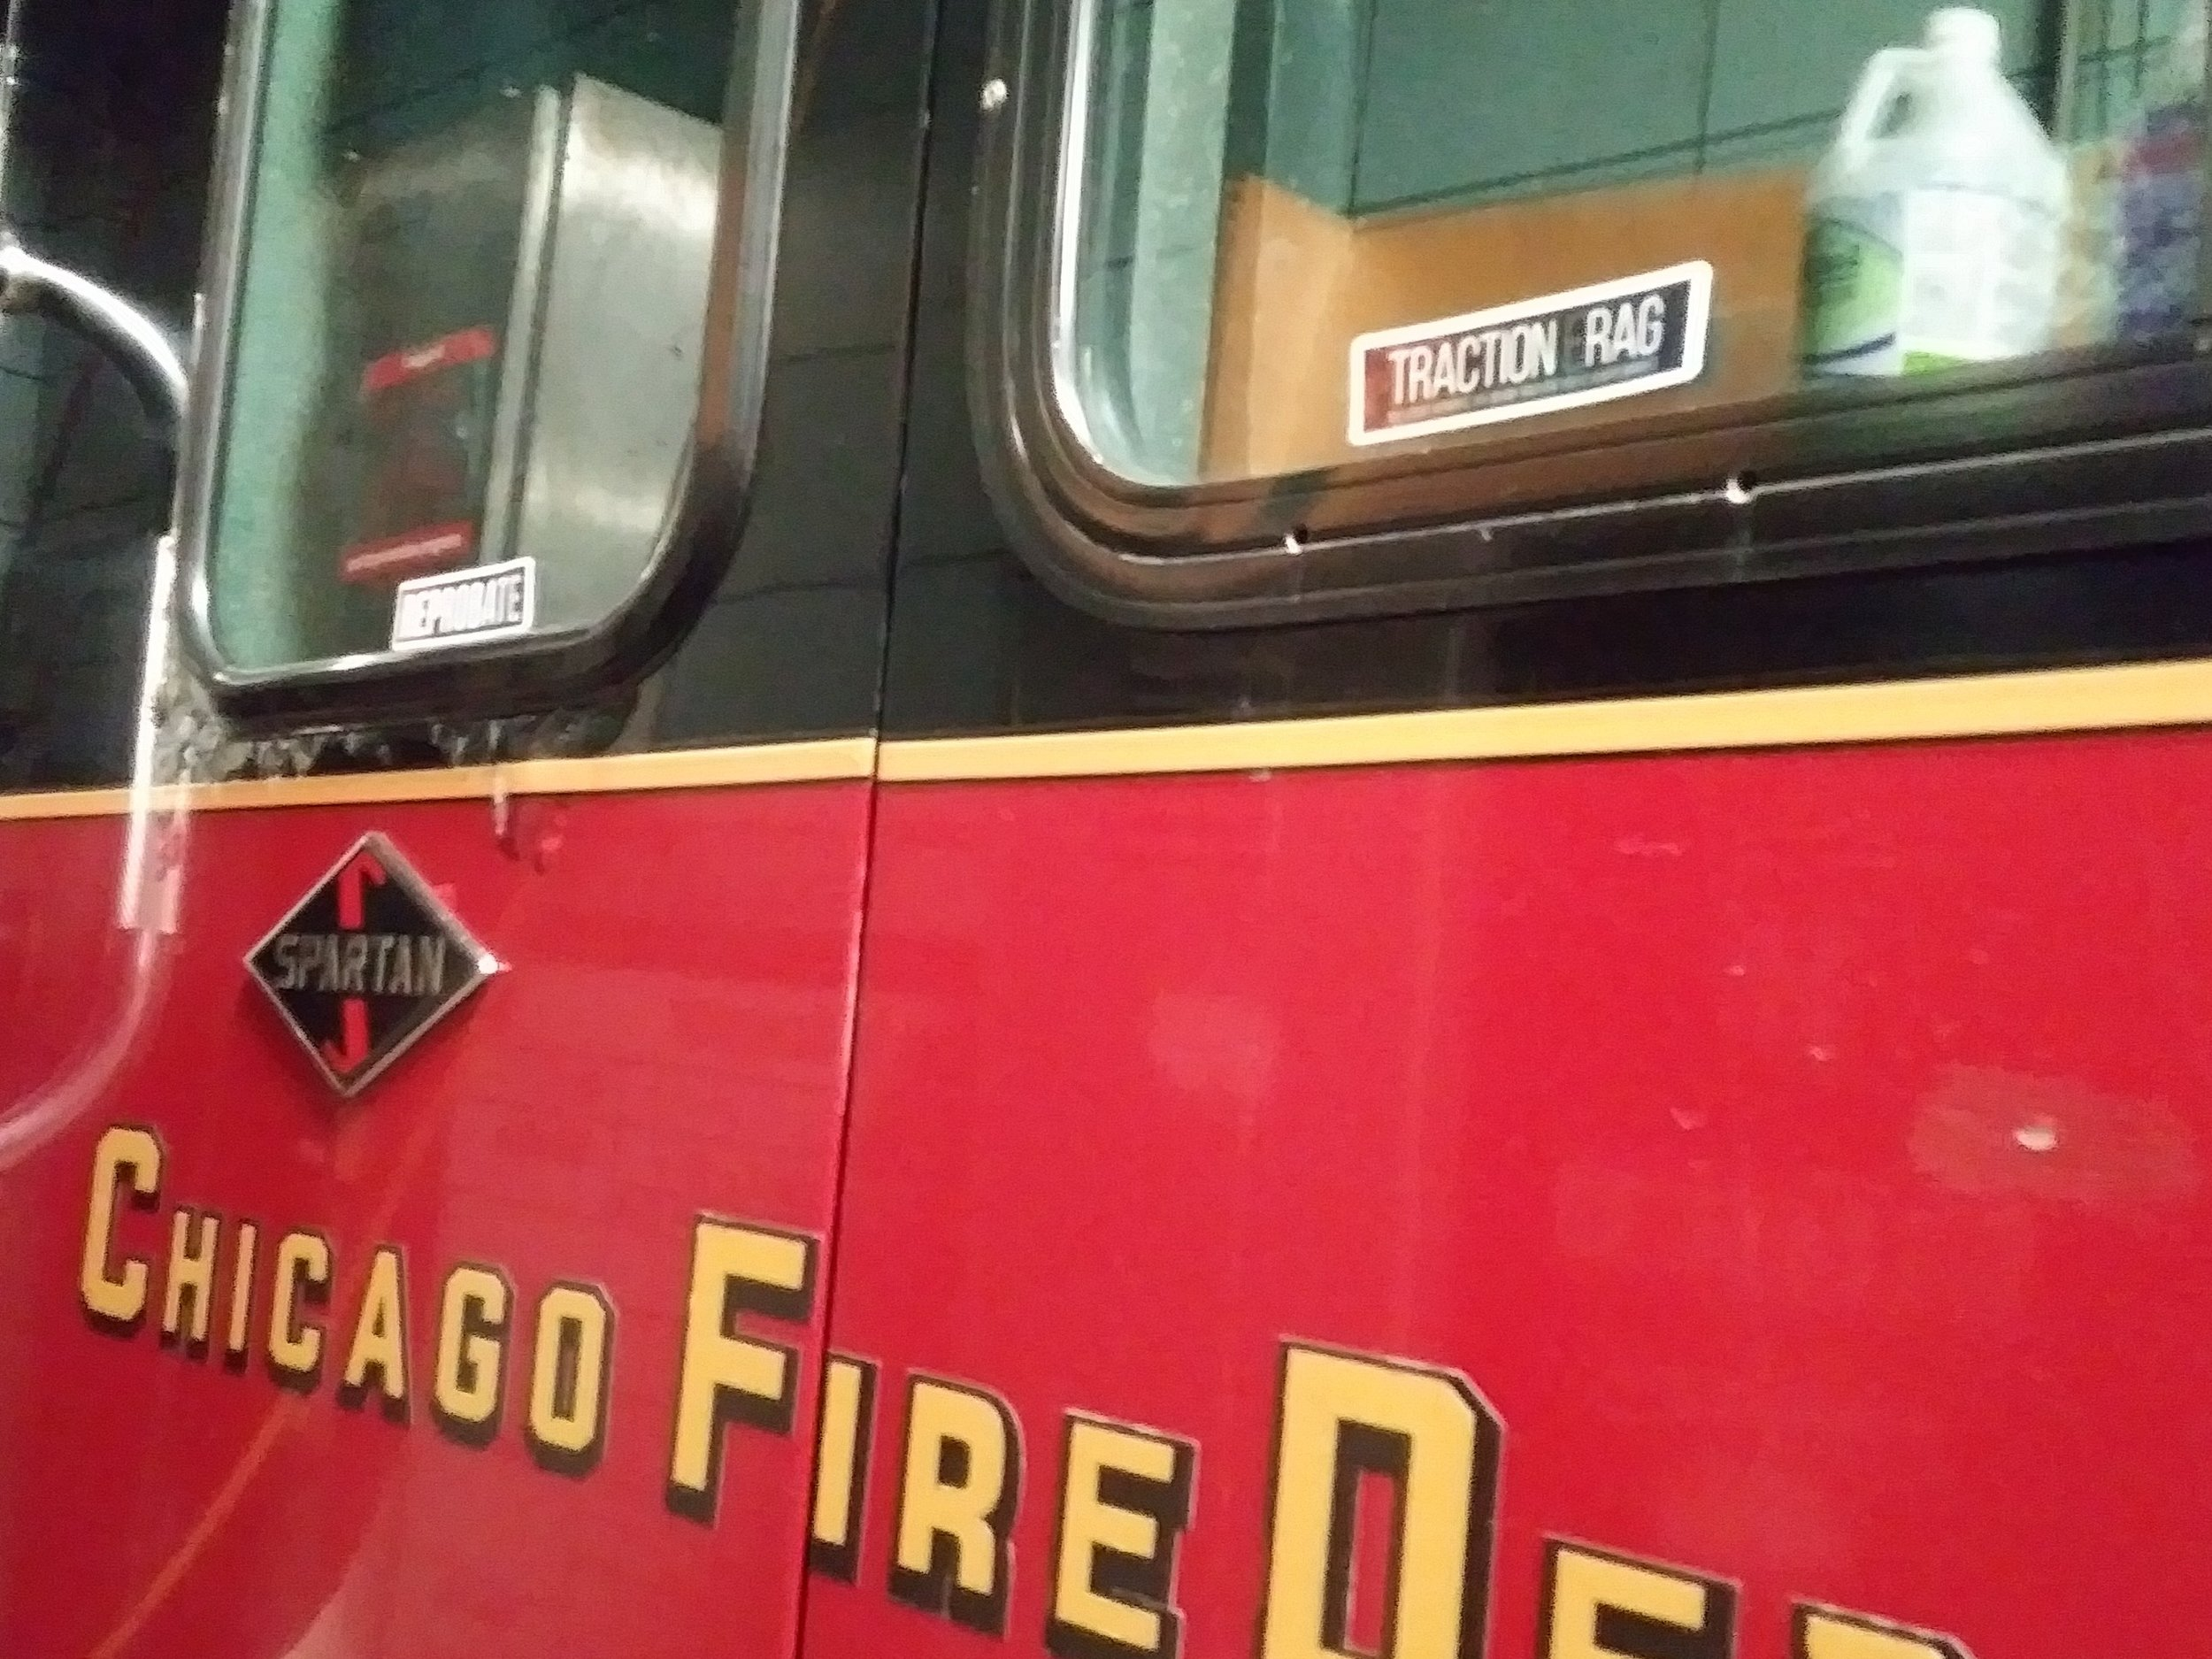 traction erag chicago fire truck.jpg